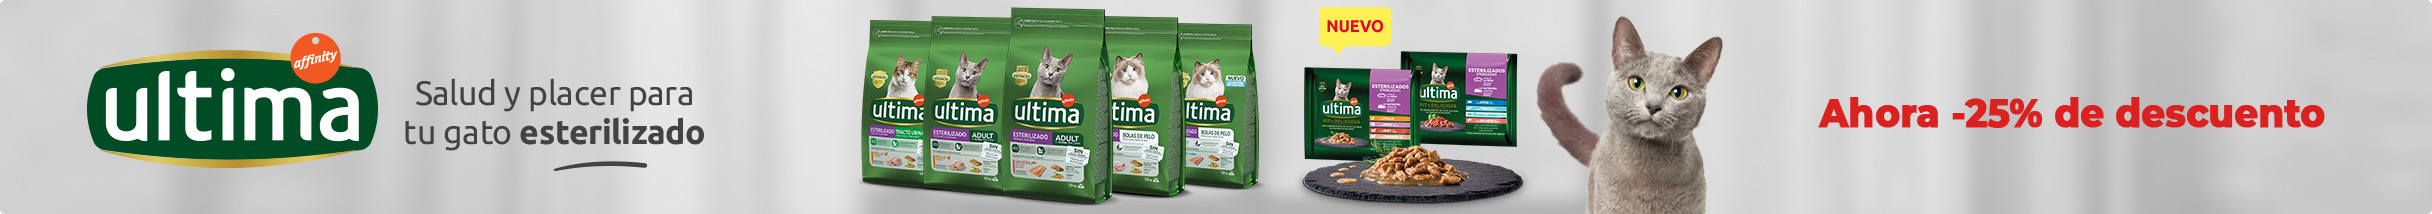 banner ultima pw42 2021